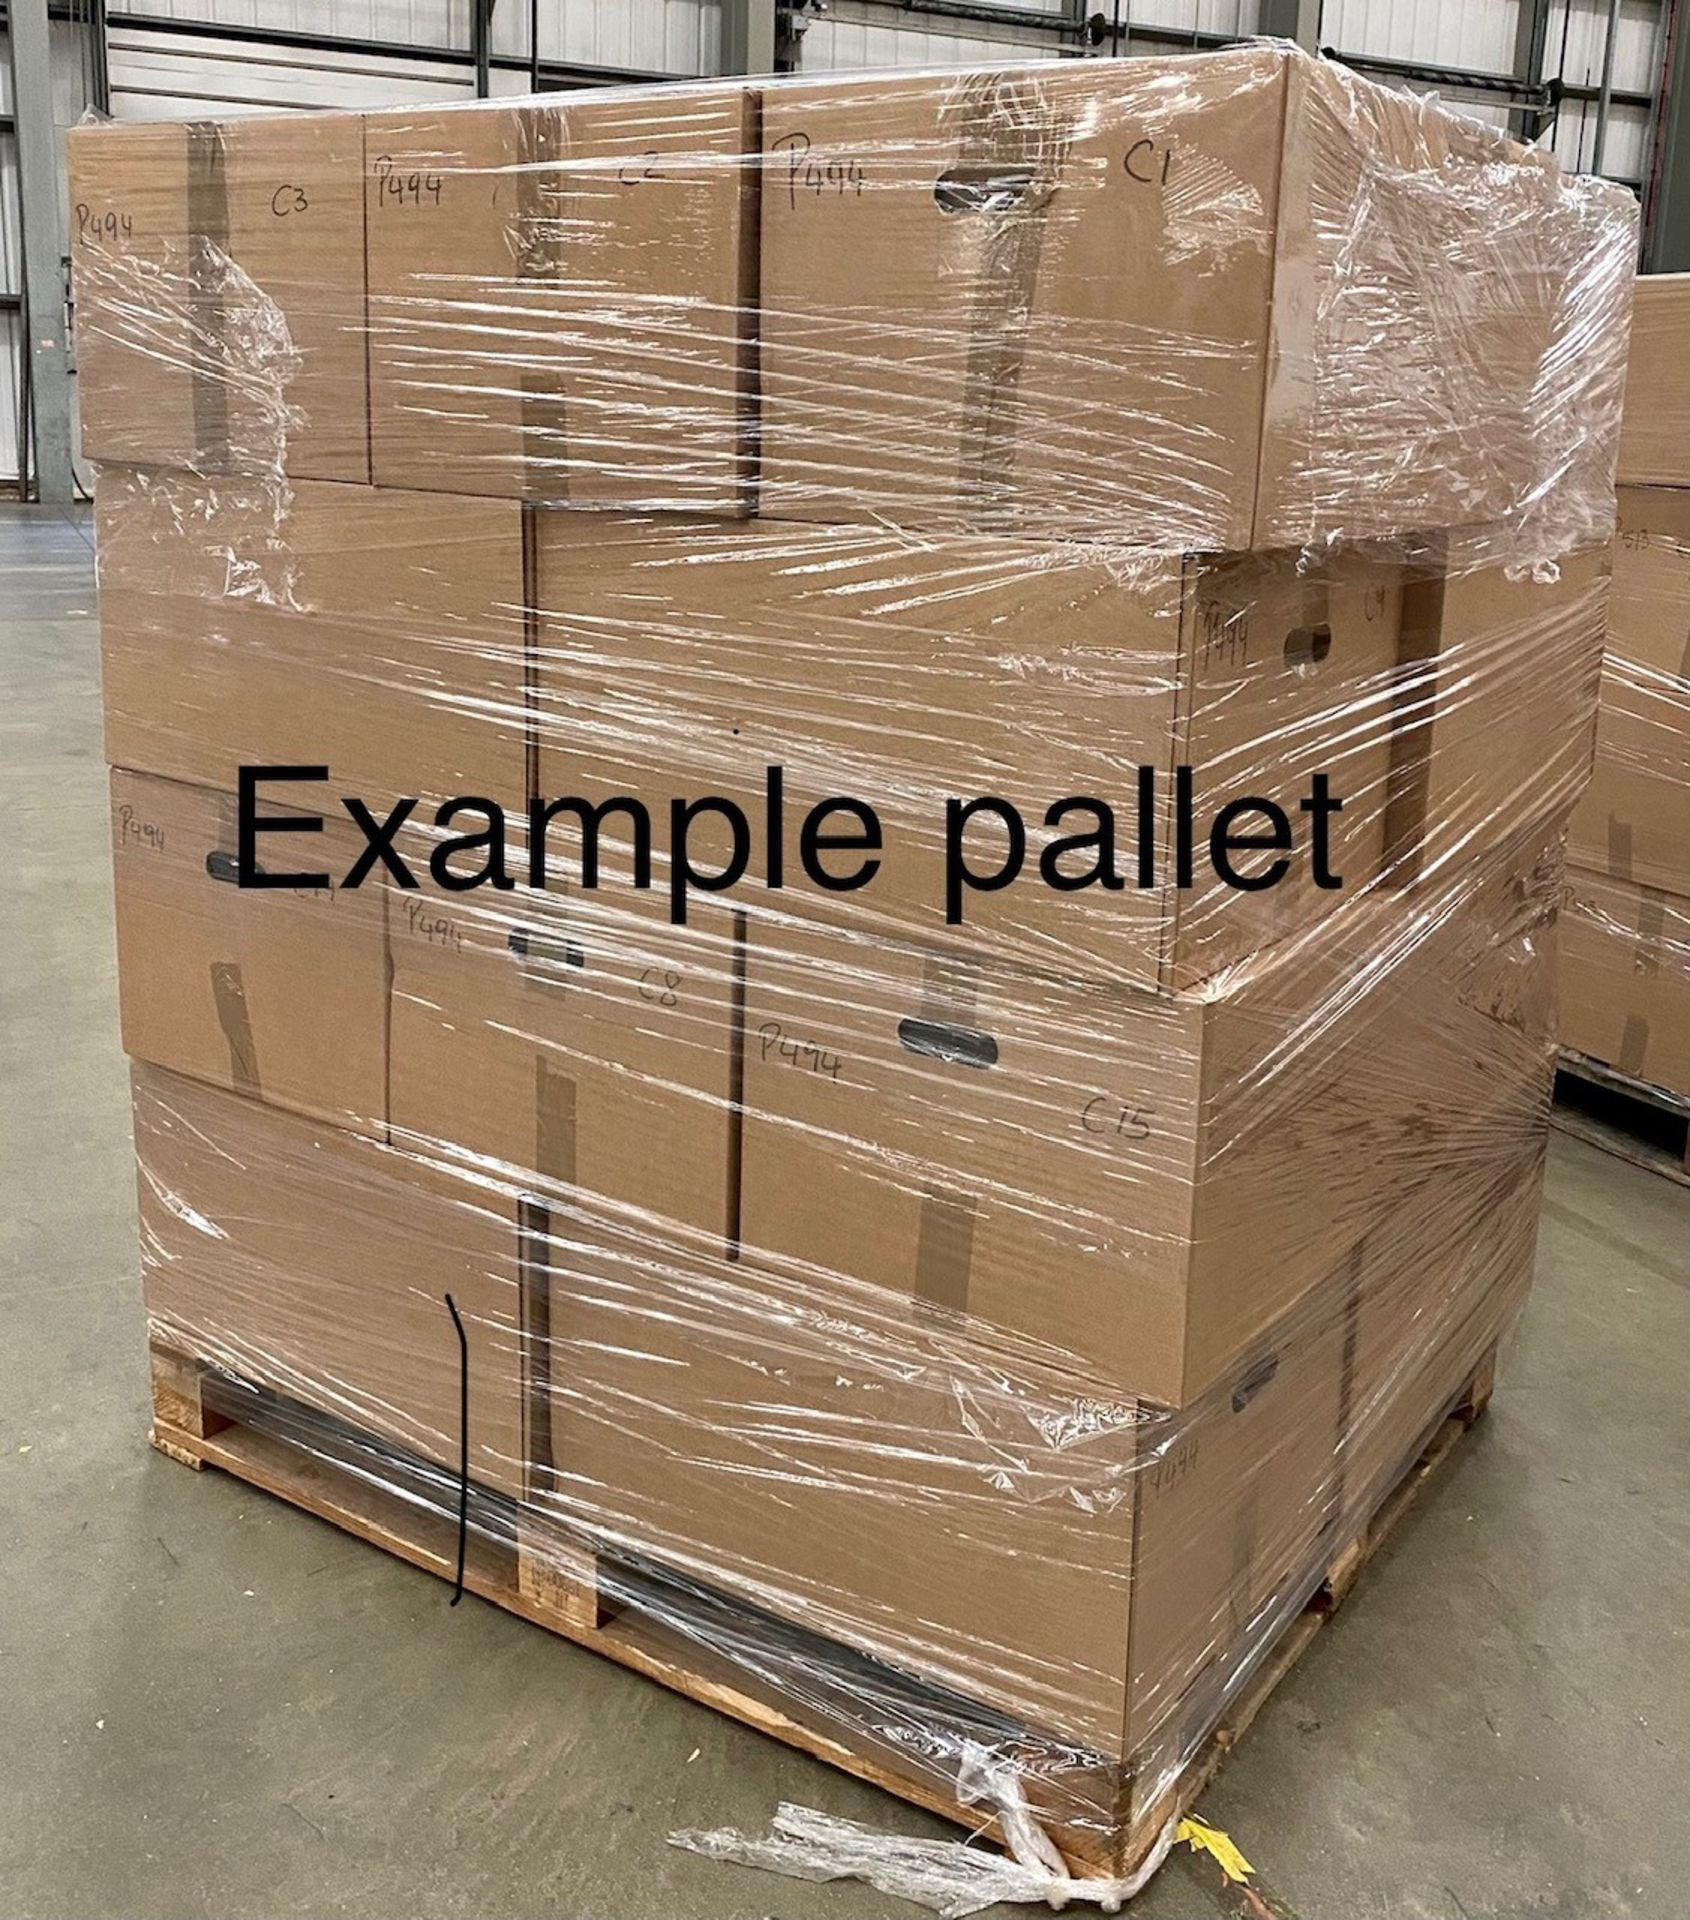 1 x mixed pallet = 235 items of Grade A M&S Womenswear Clothing. Total RRP £5345.50 - Image 10 of 11